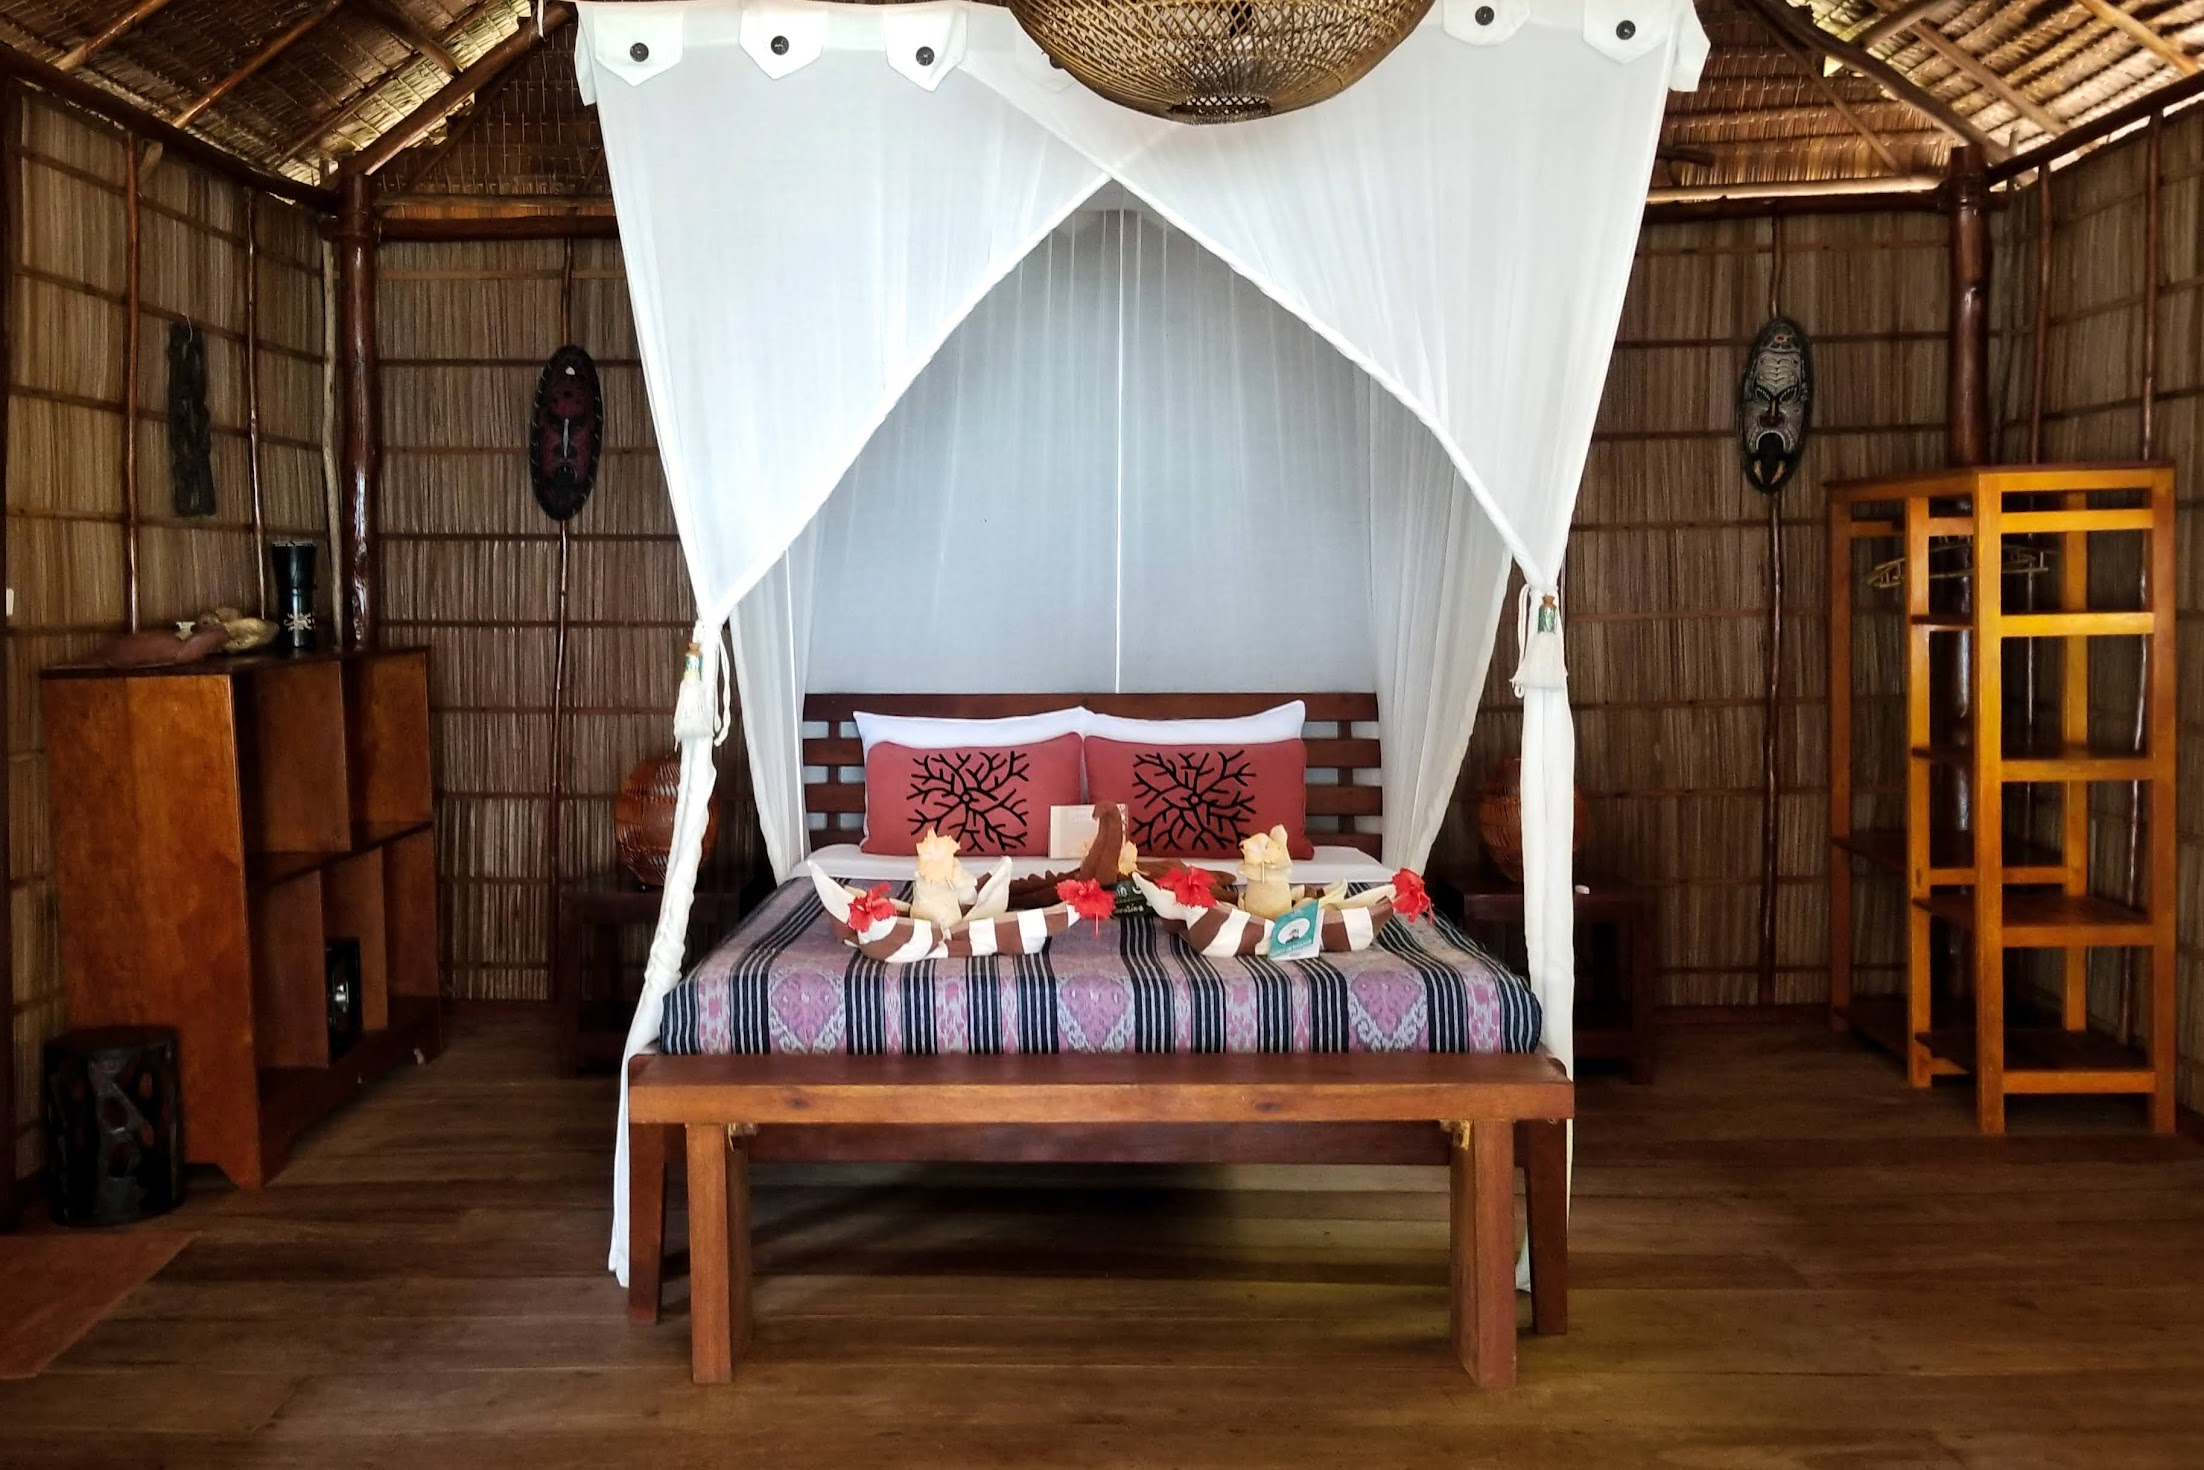 Our room at Biodiversity Eco-Resort